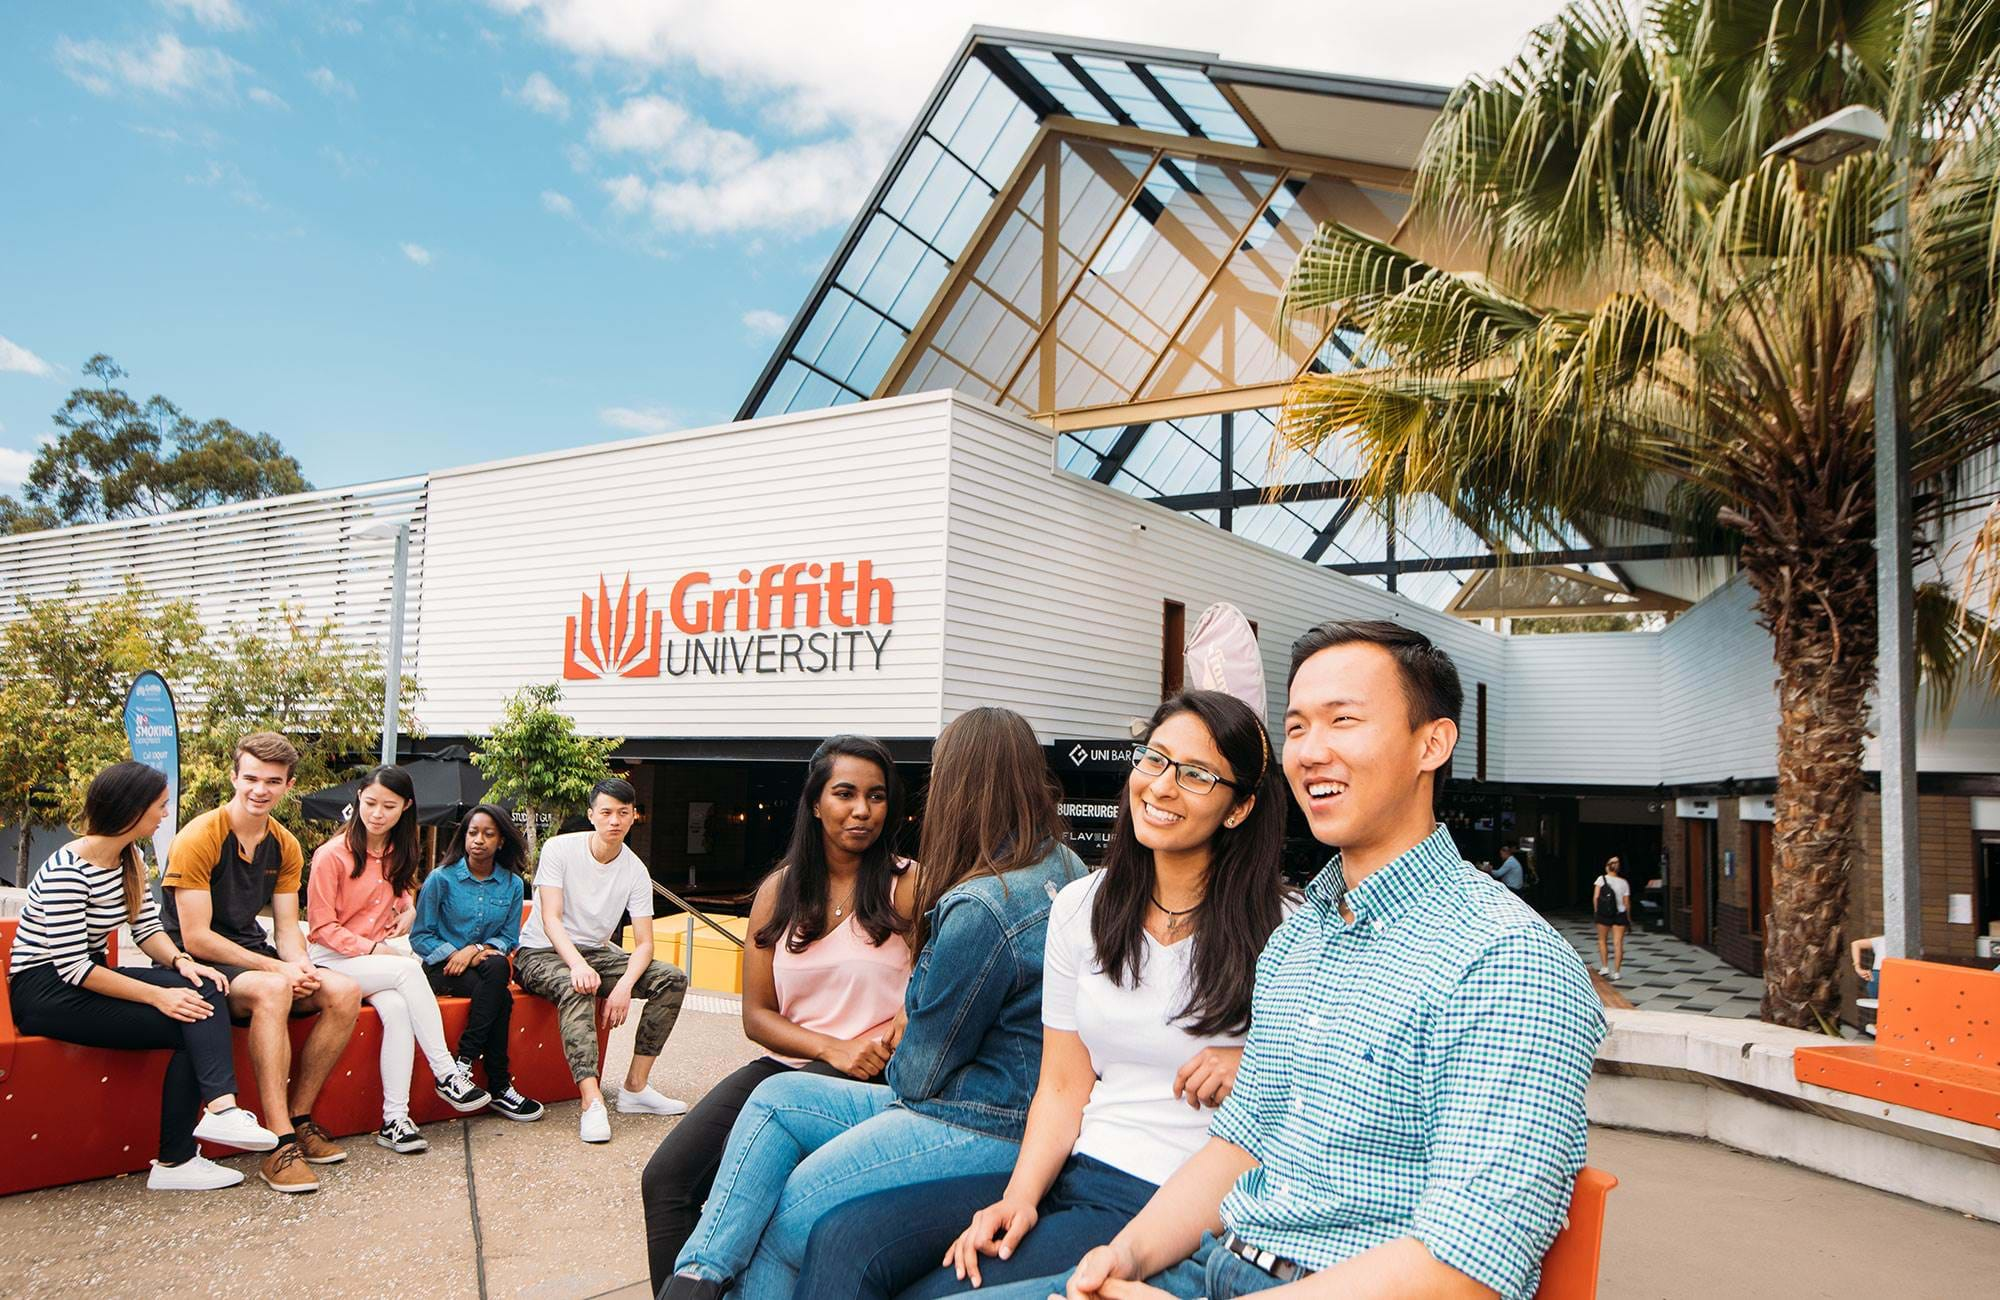 grupp av studenter vid griffith university